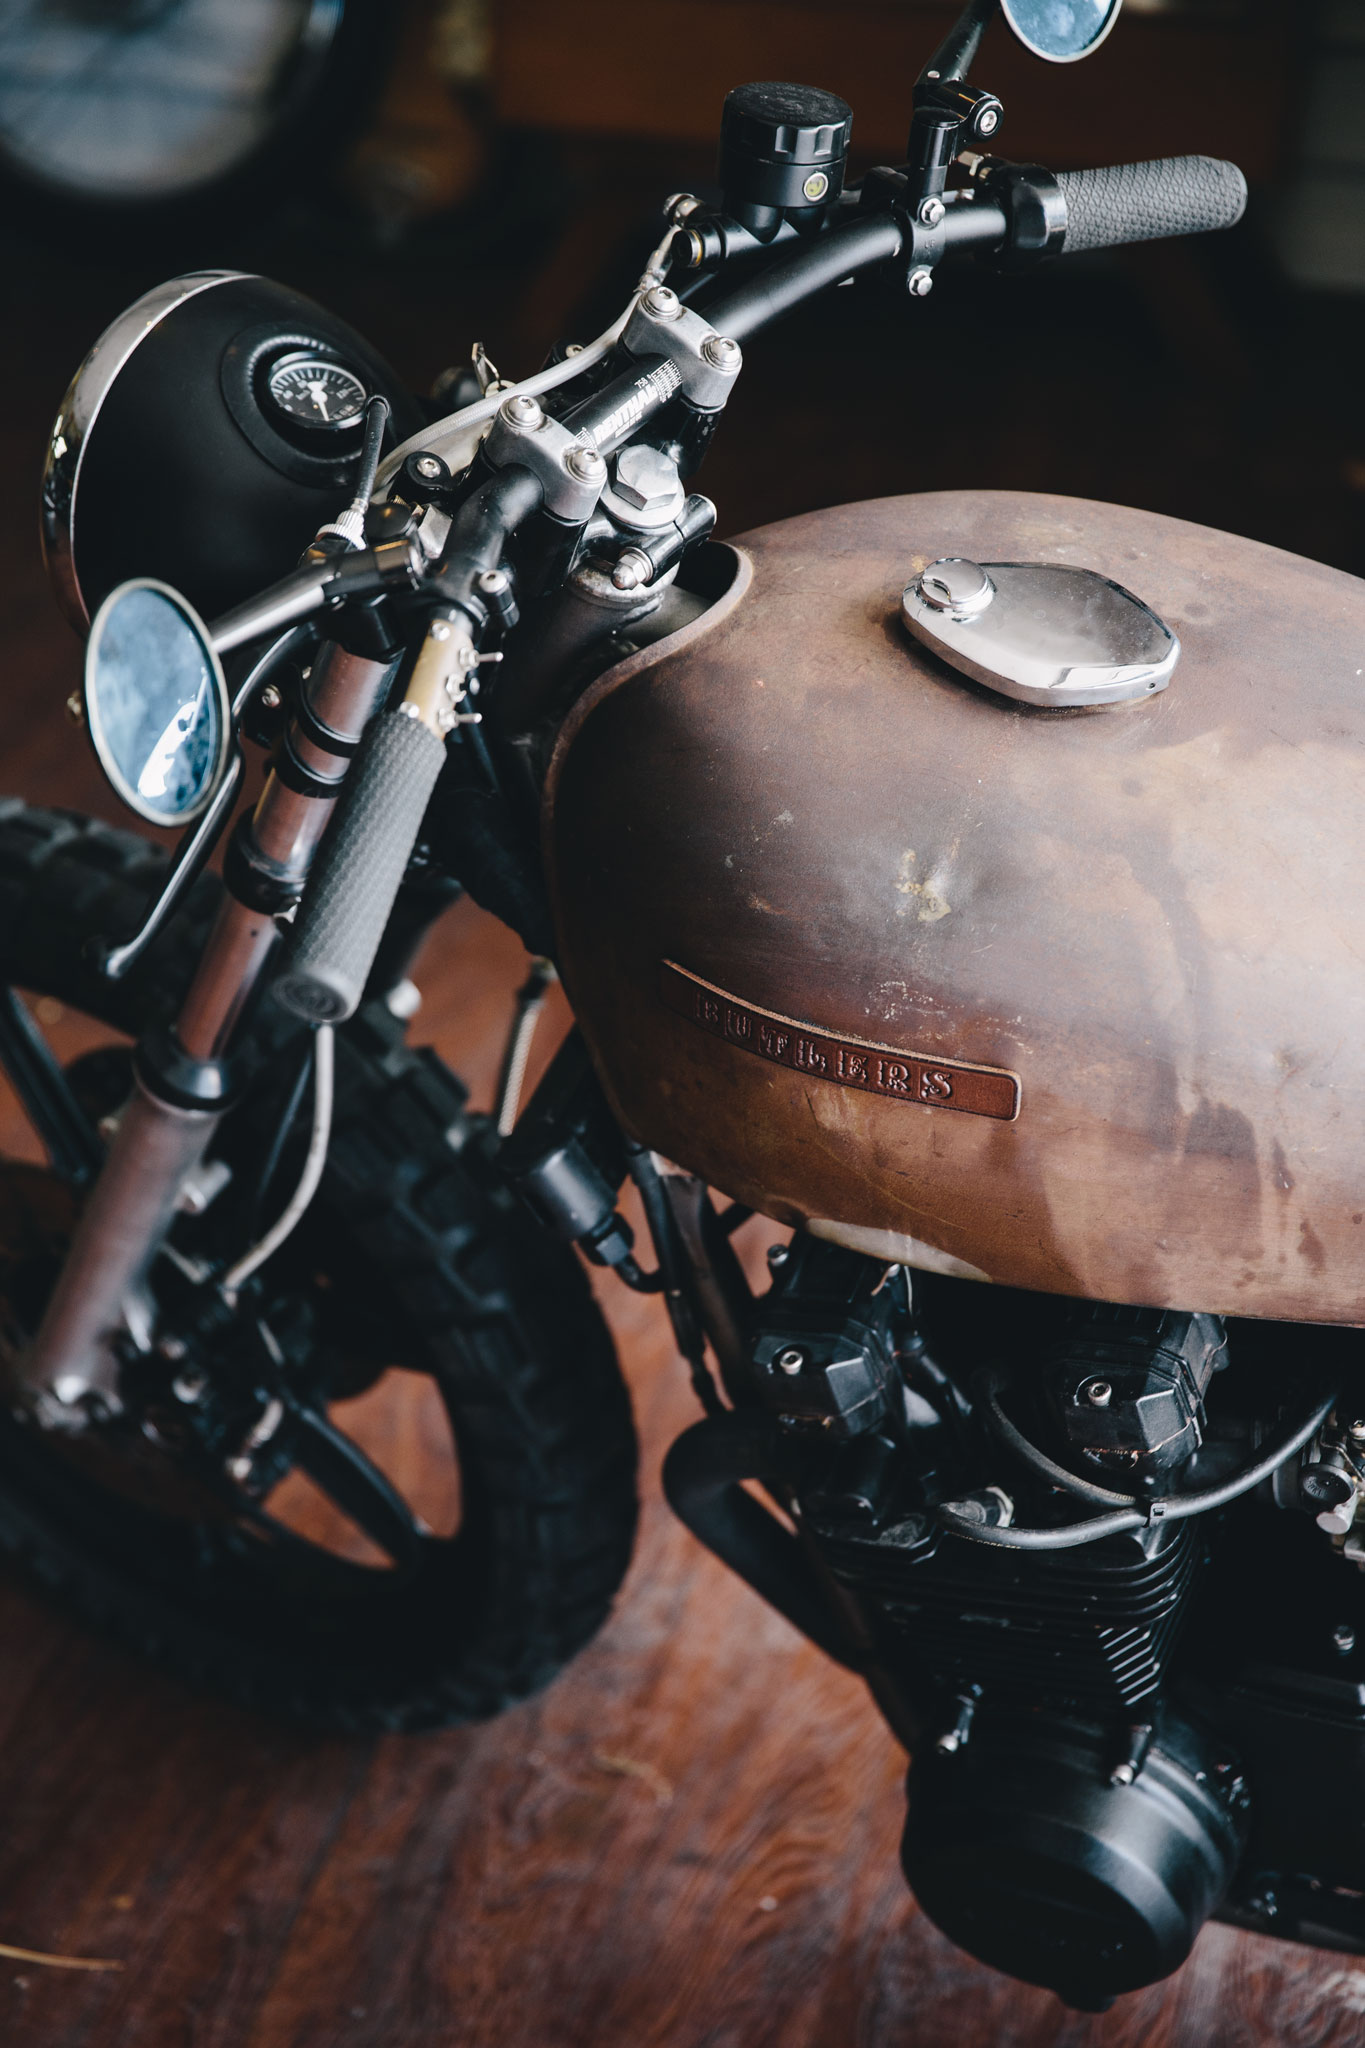 butlers-customs-cafe-racers-21